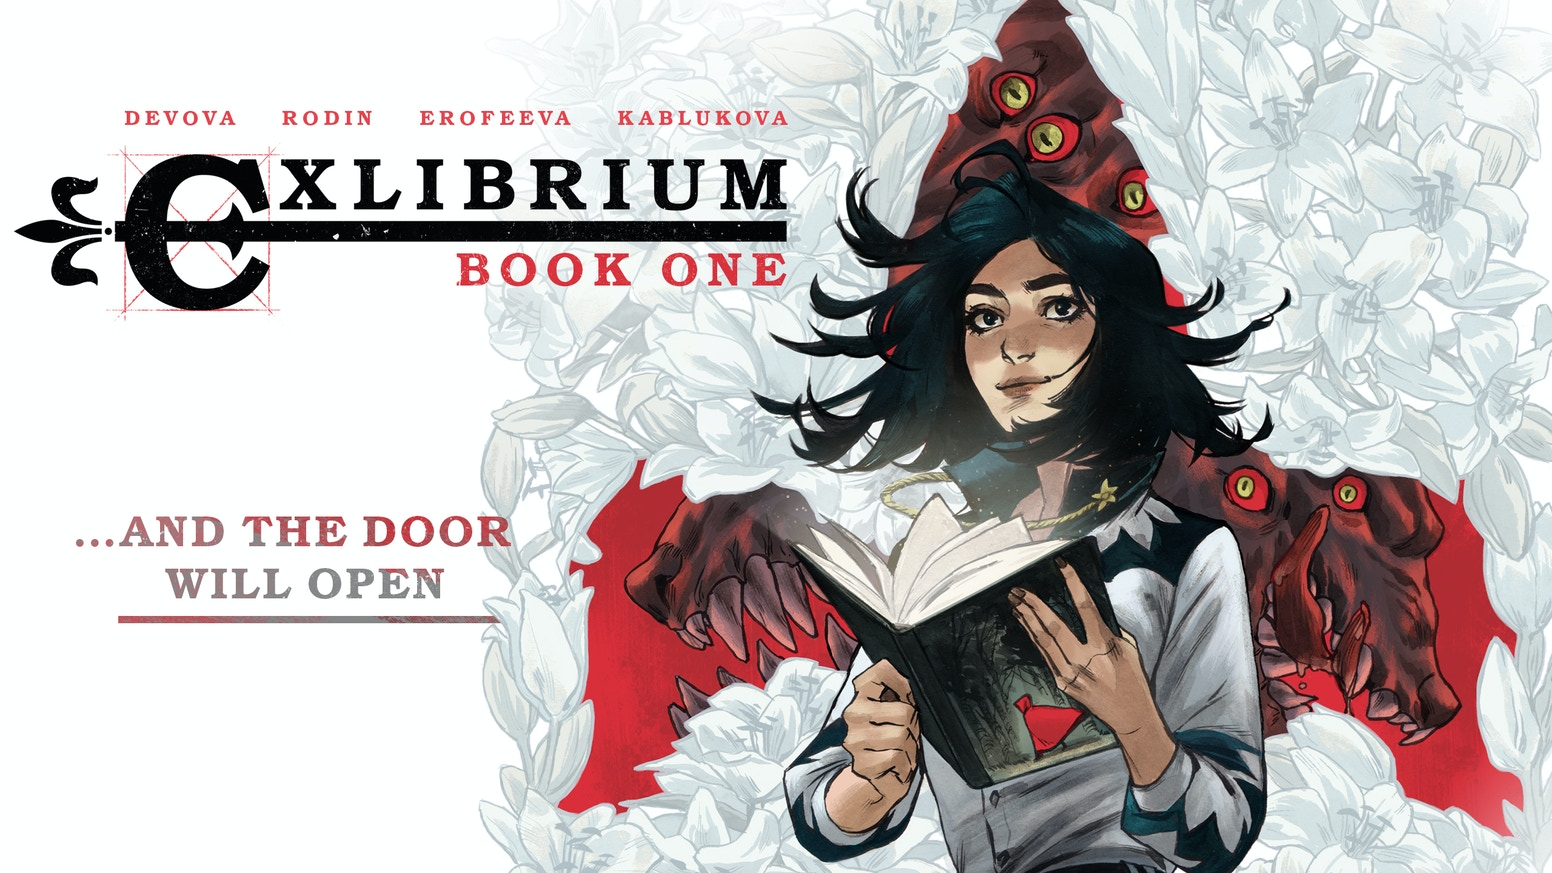 You can now buy Exlibrium: Book One in a few clicks! Start reading one of the most popular and critically acclaimed comic book series in Russia!